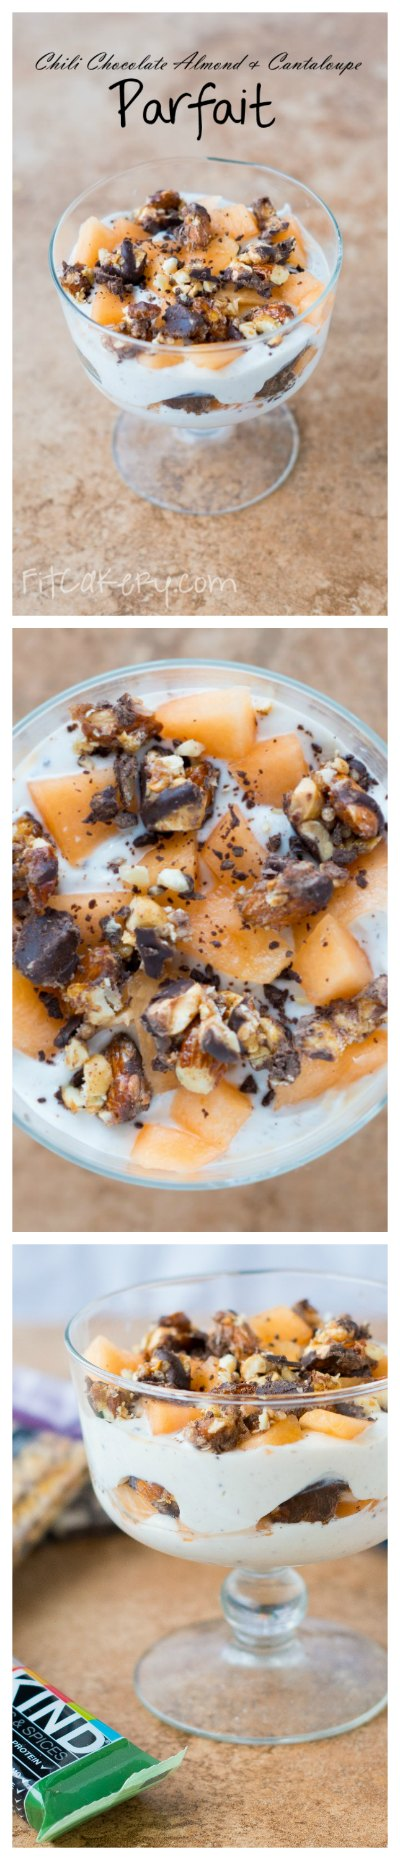 Chili Chocolate Almond & Cantaloupe Parfait {plus a sweet giveaway!} | FitCakery.com